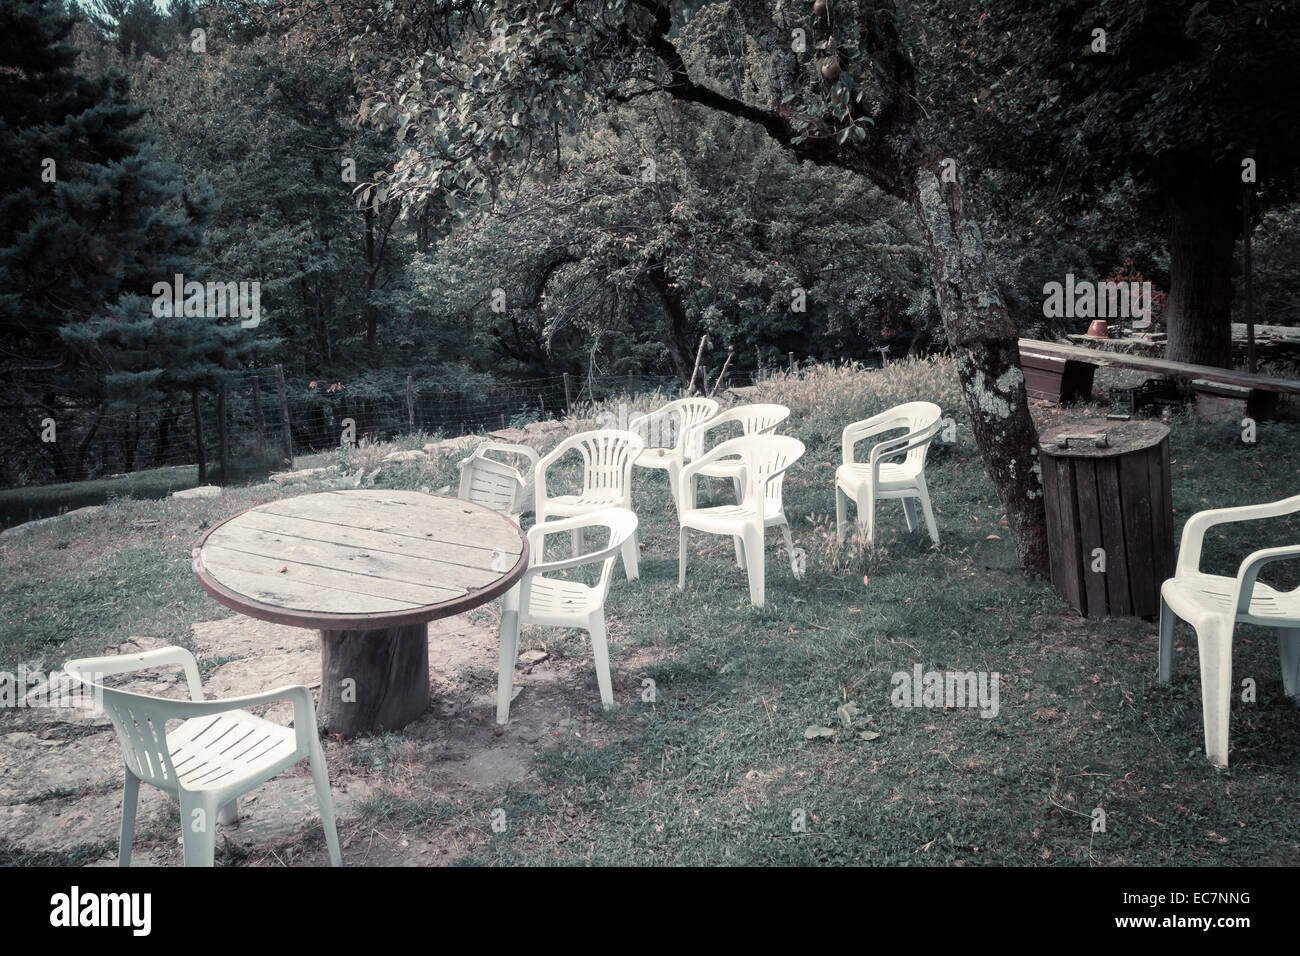 outdoors table chairs absence - Stock Image